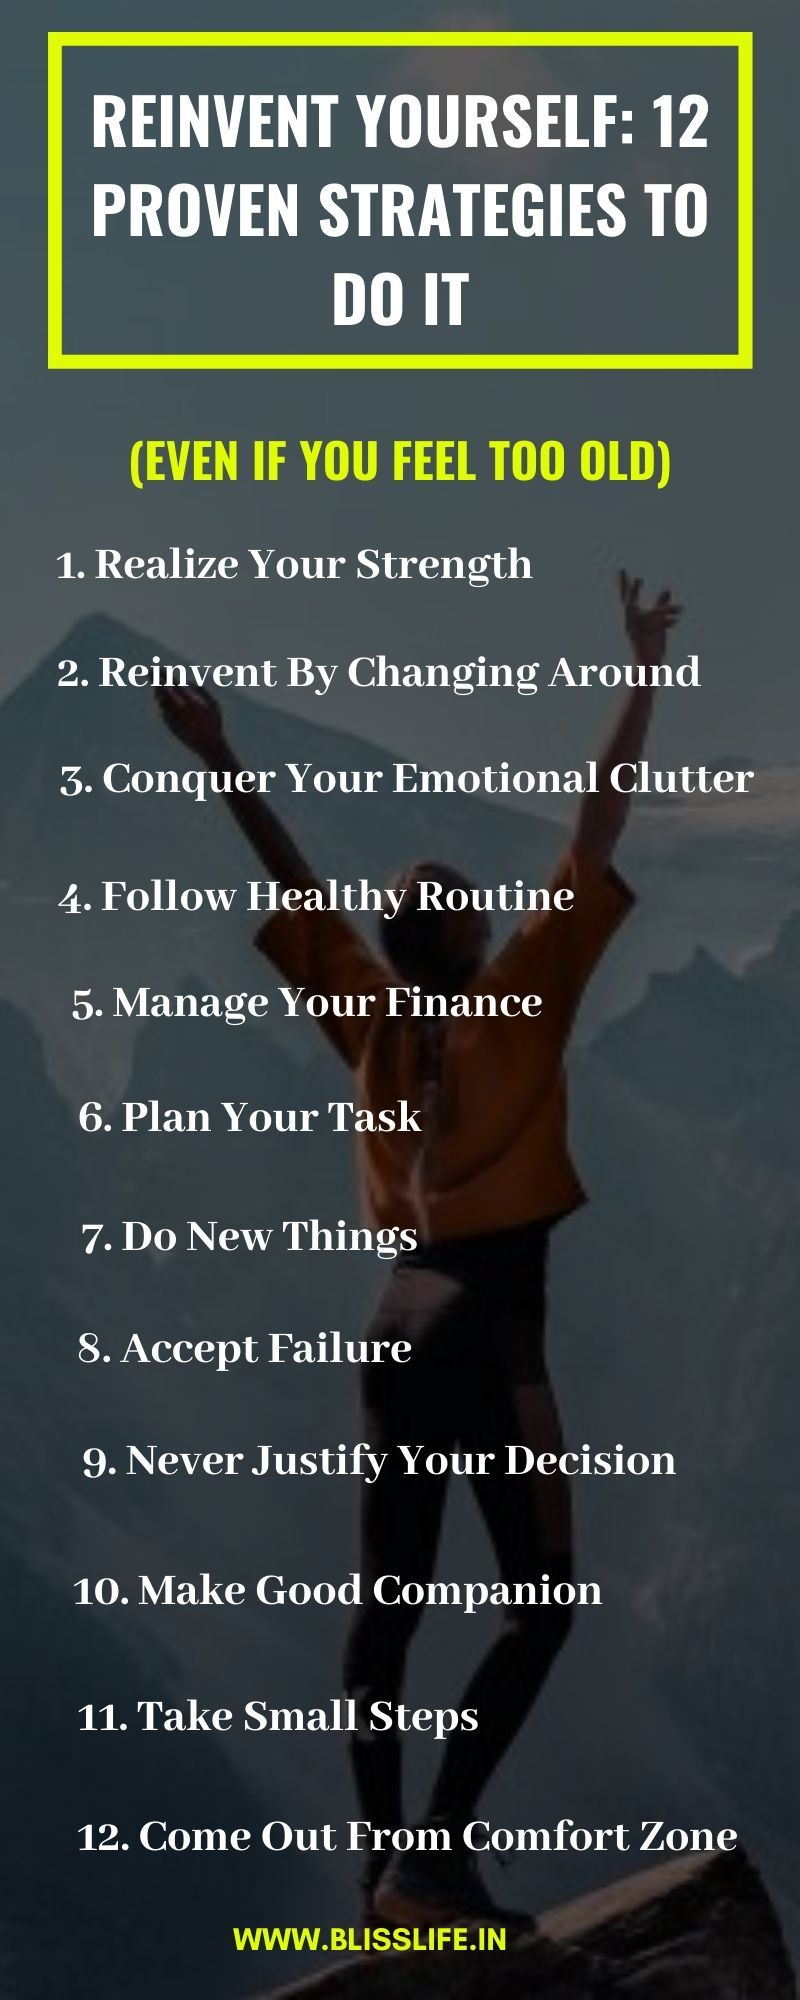 Reinvent Yourself 12 Proven Strategies to Do It (Even If